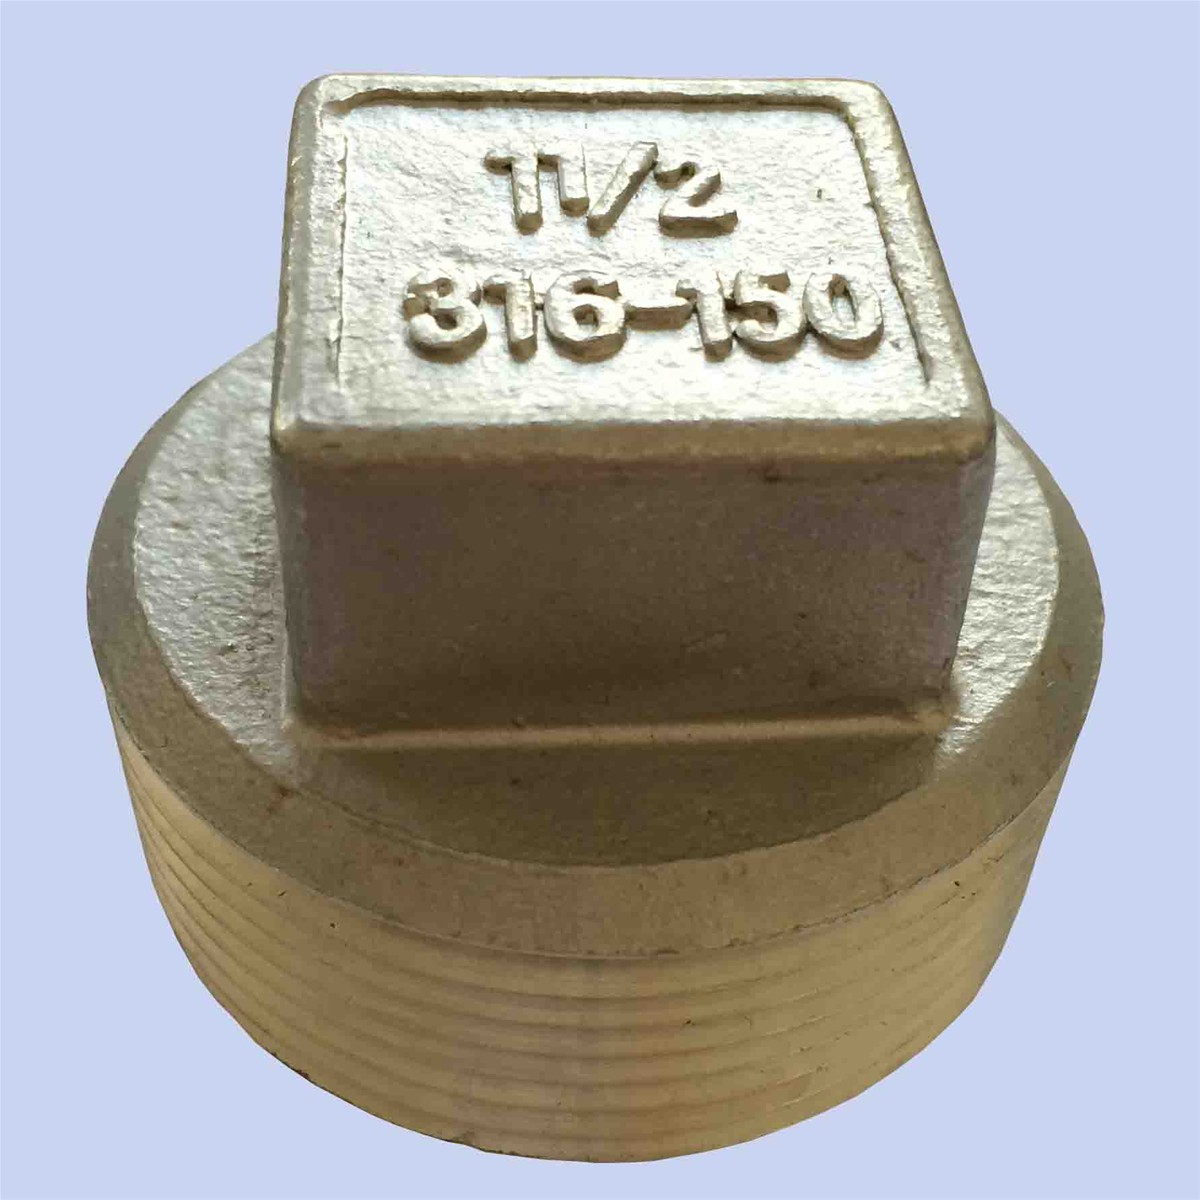 Stainless steel square plug purchasing souring agent